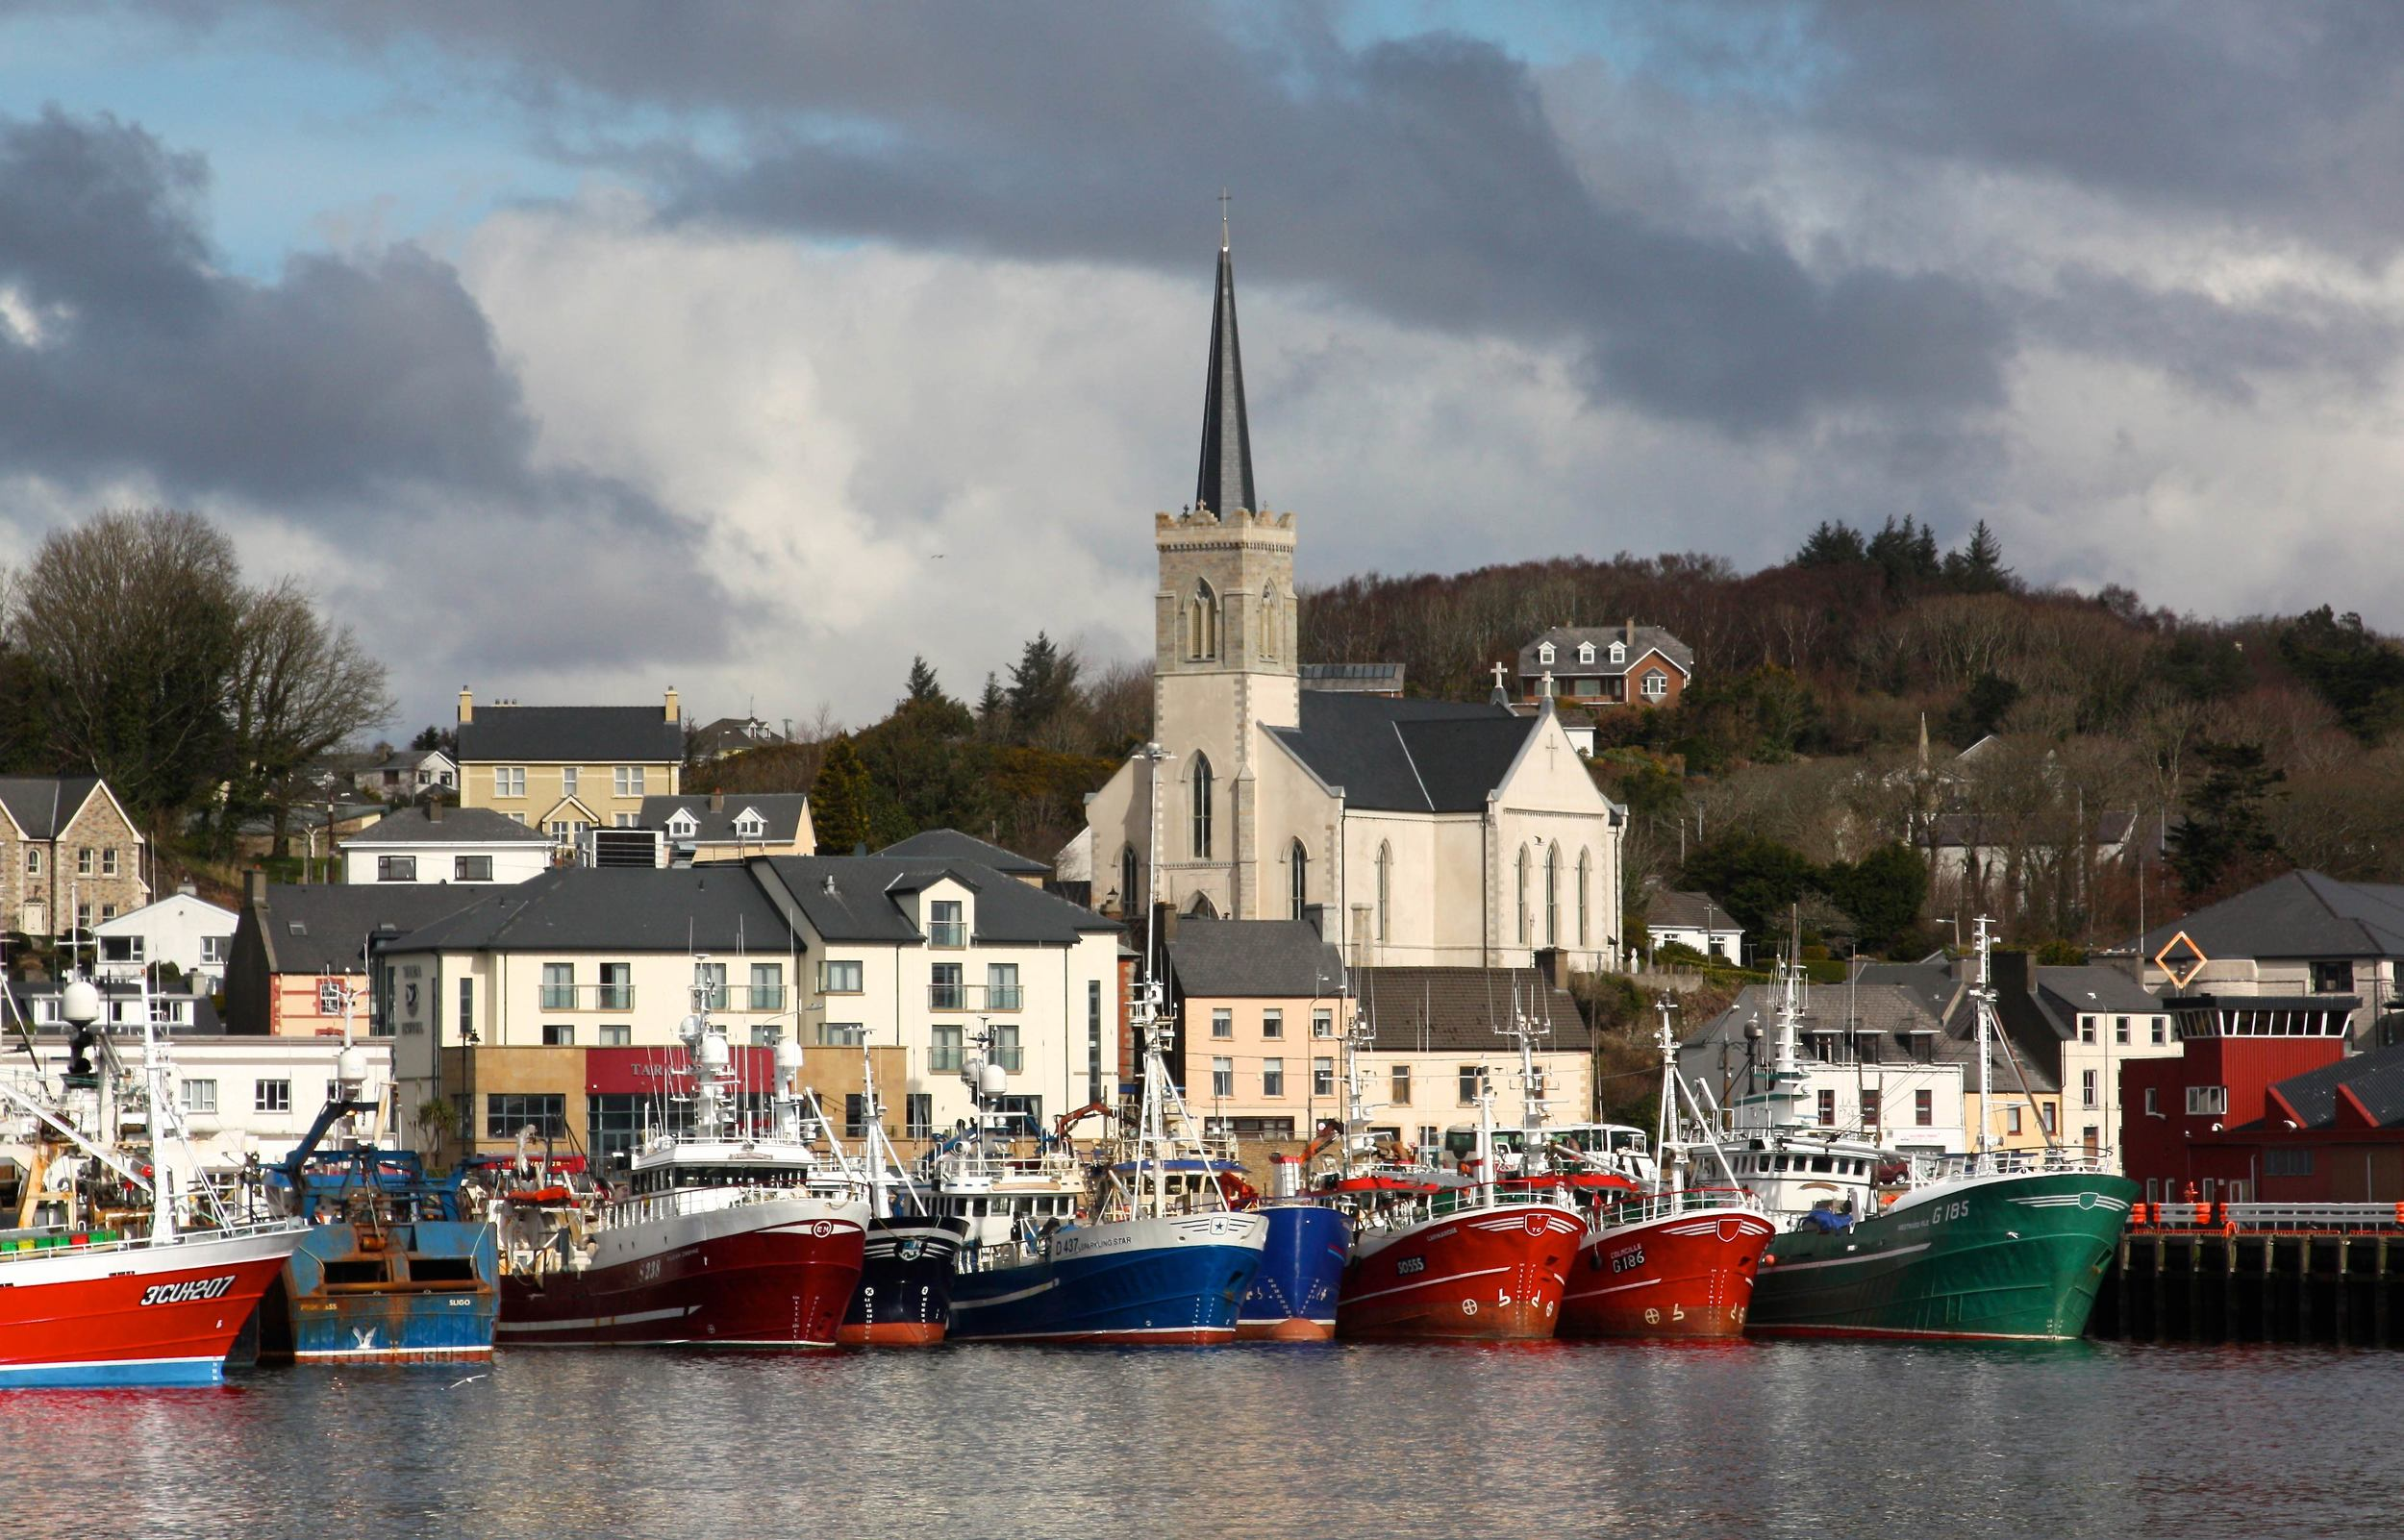 Killybegs-01-REDU.jpg